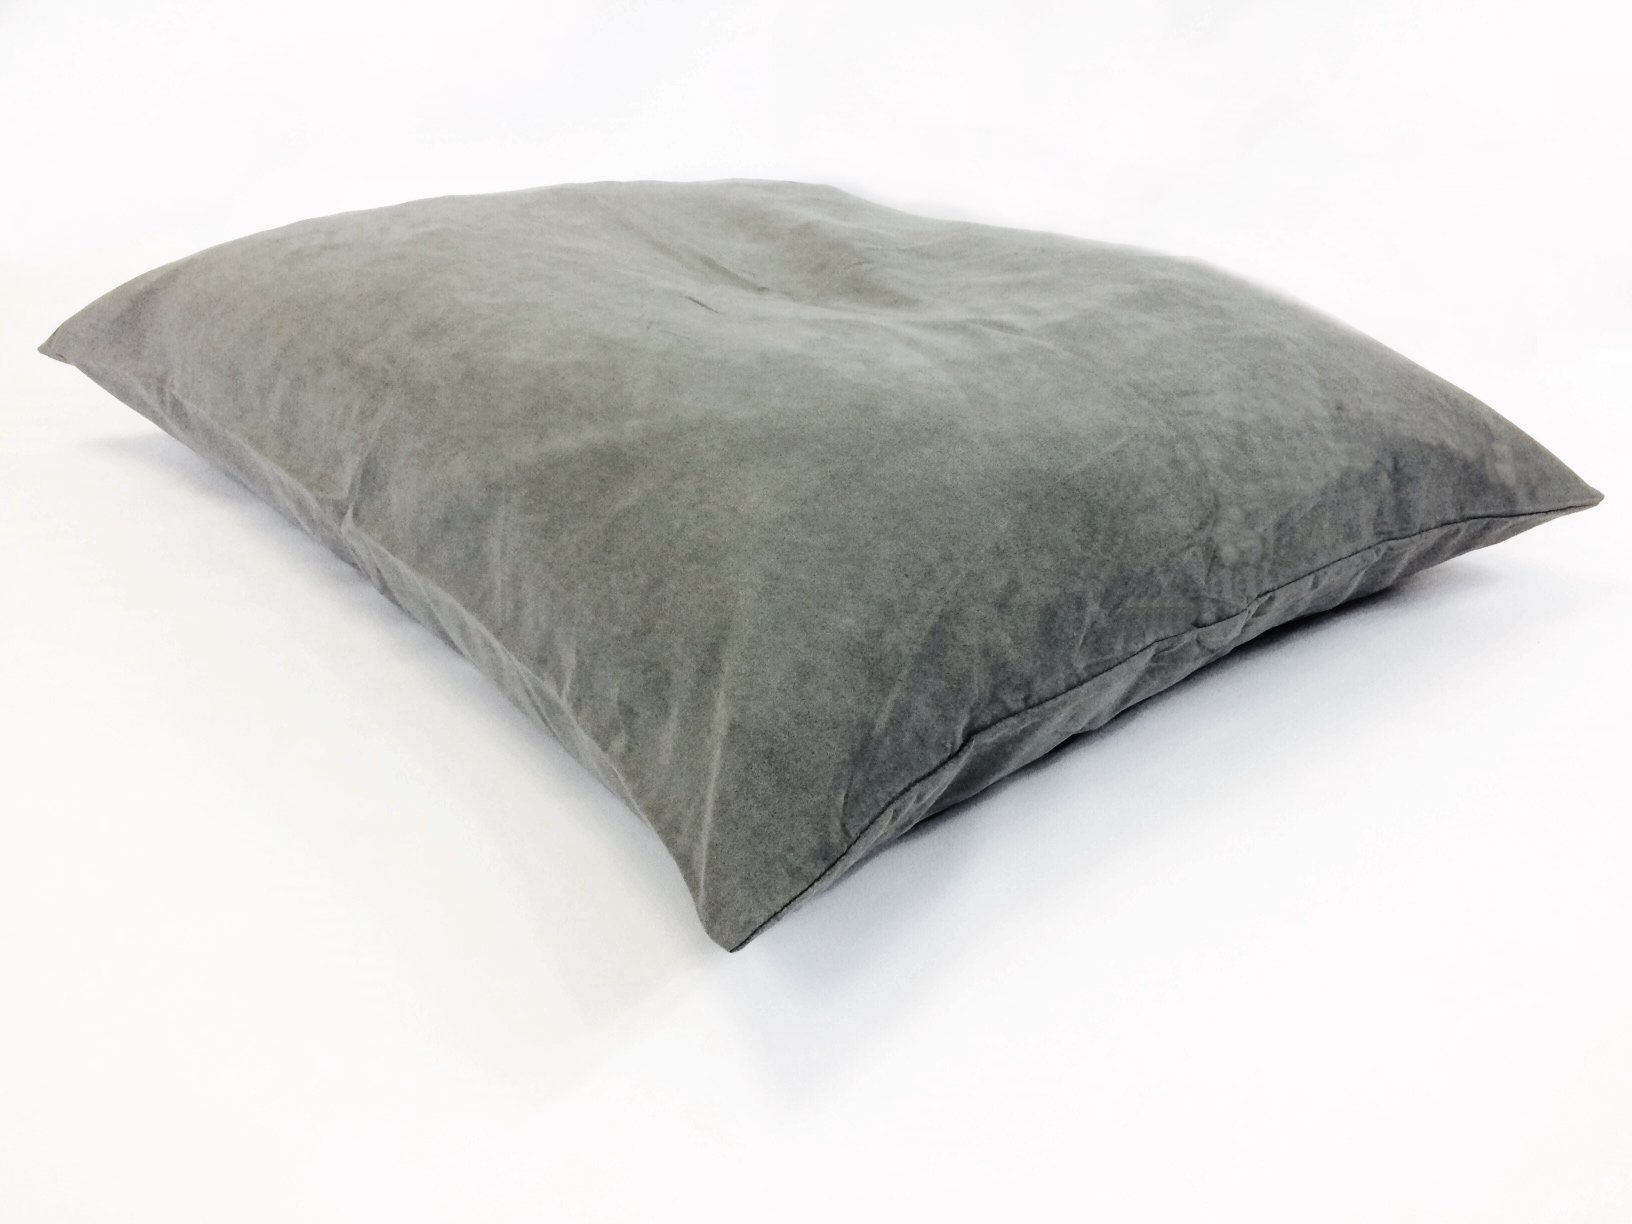 36''x29'' Medium Size MicroCushion High Density Memory Foam Soft Poly Fiber Waterproof Pet Pillow Bed with Removable Zippered Luxurious Soft Grey Suede Cover Case for Small to Medium Dogs